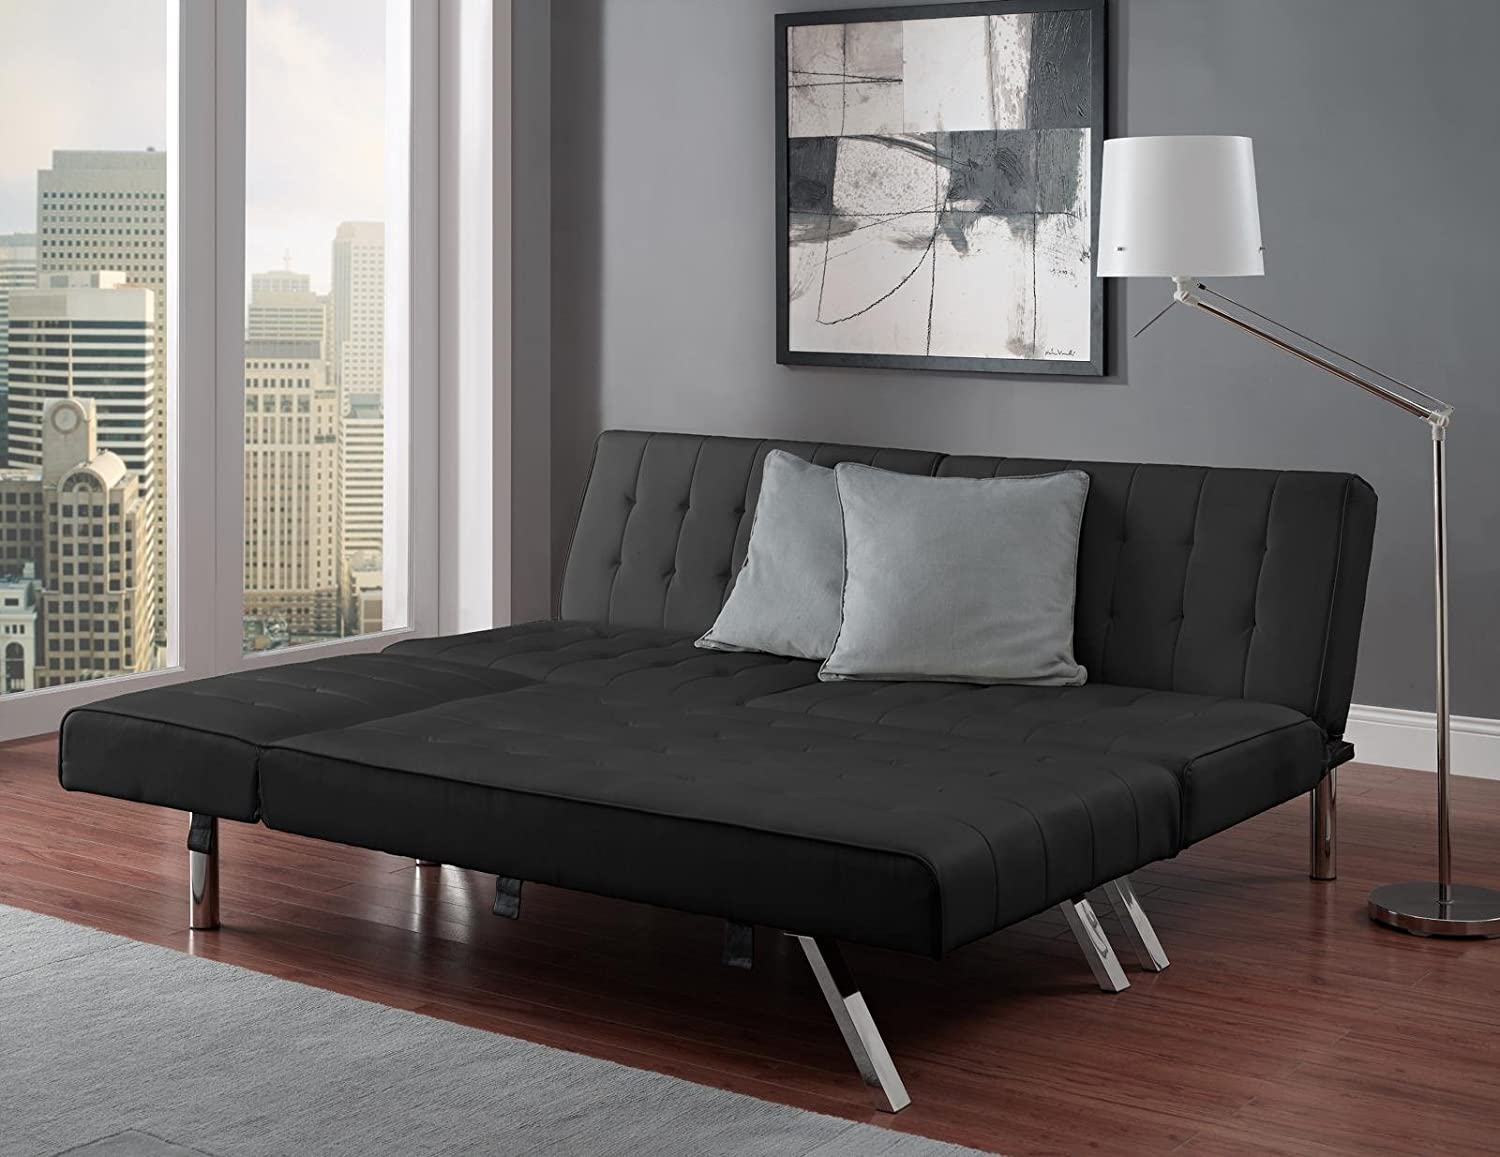 faux down leather sofa bed black ca convertible futon best home couch lounge products amazon choice dp kitchen fold